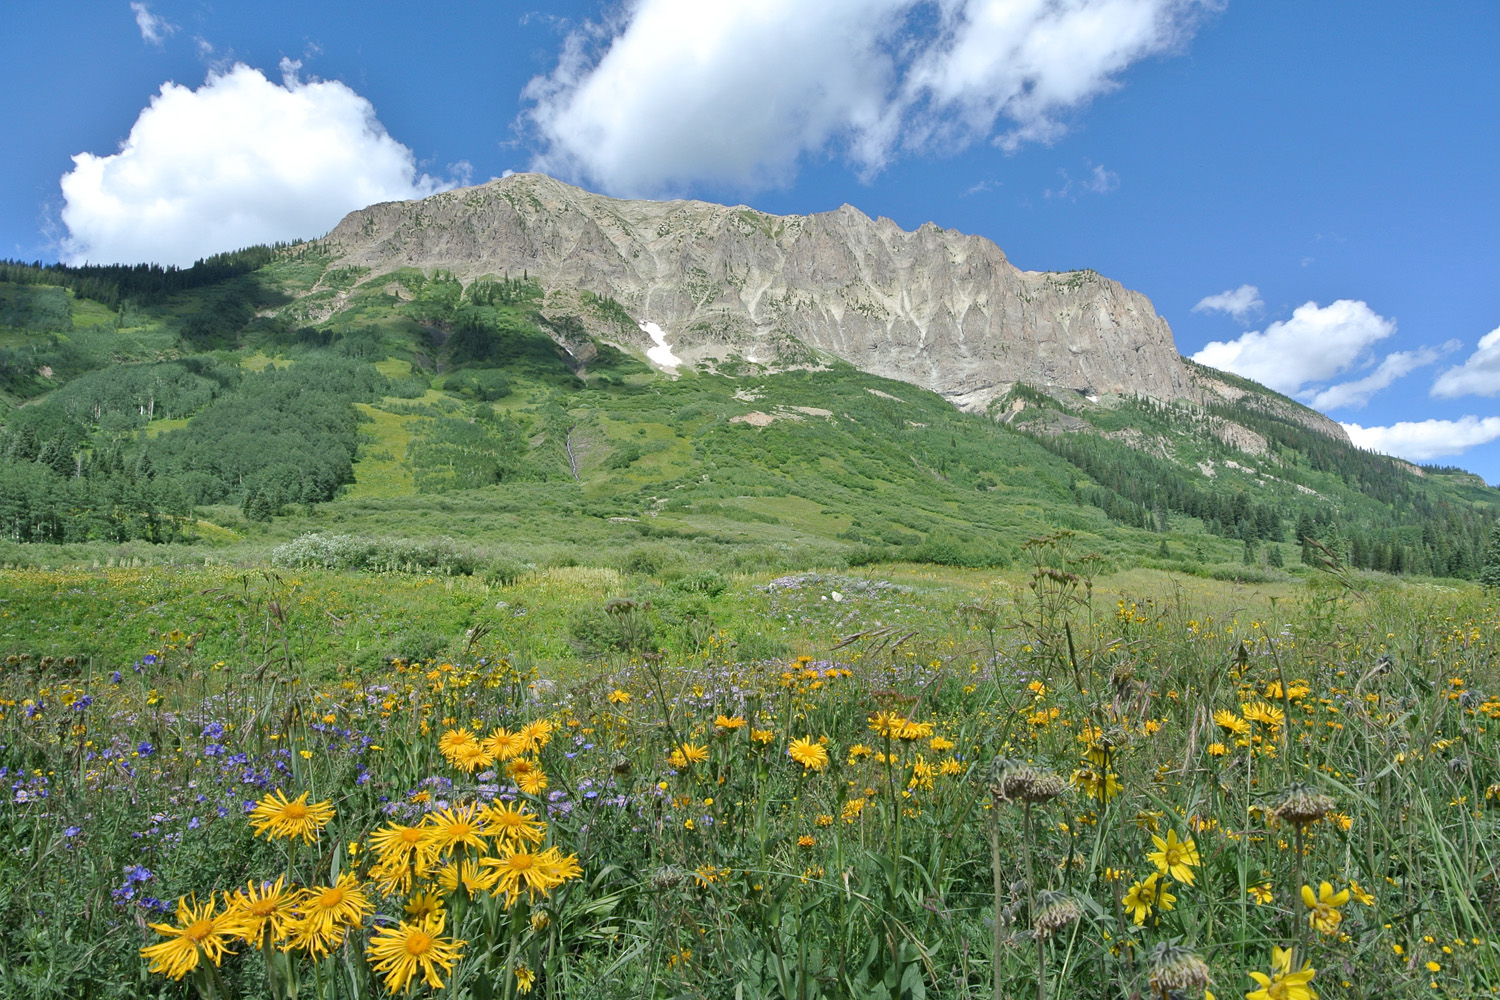 Plant Ecology Crested Butte Meadow 1500 x 1000